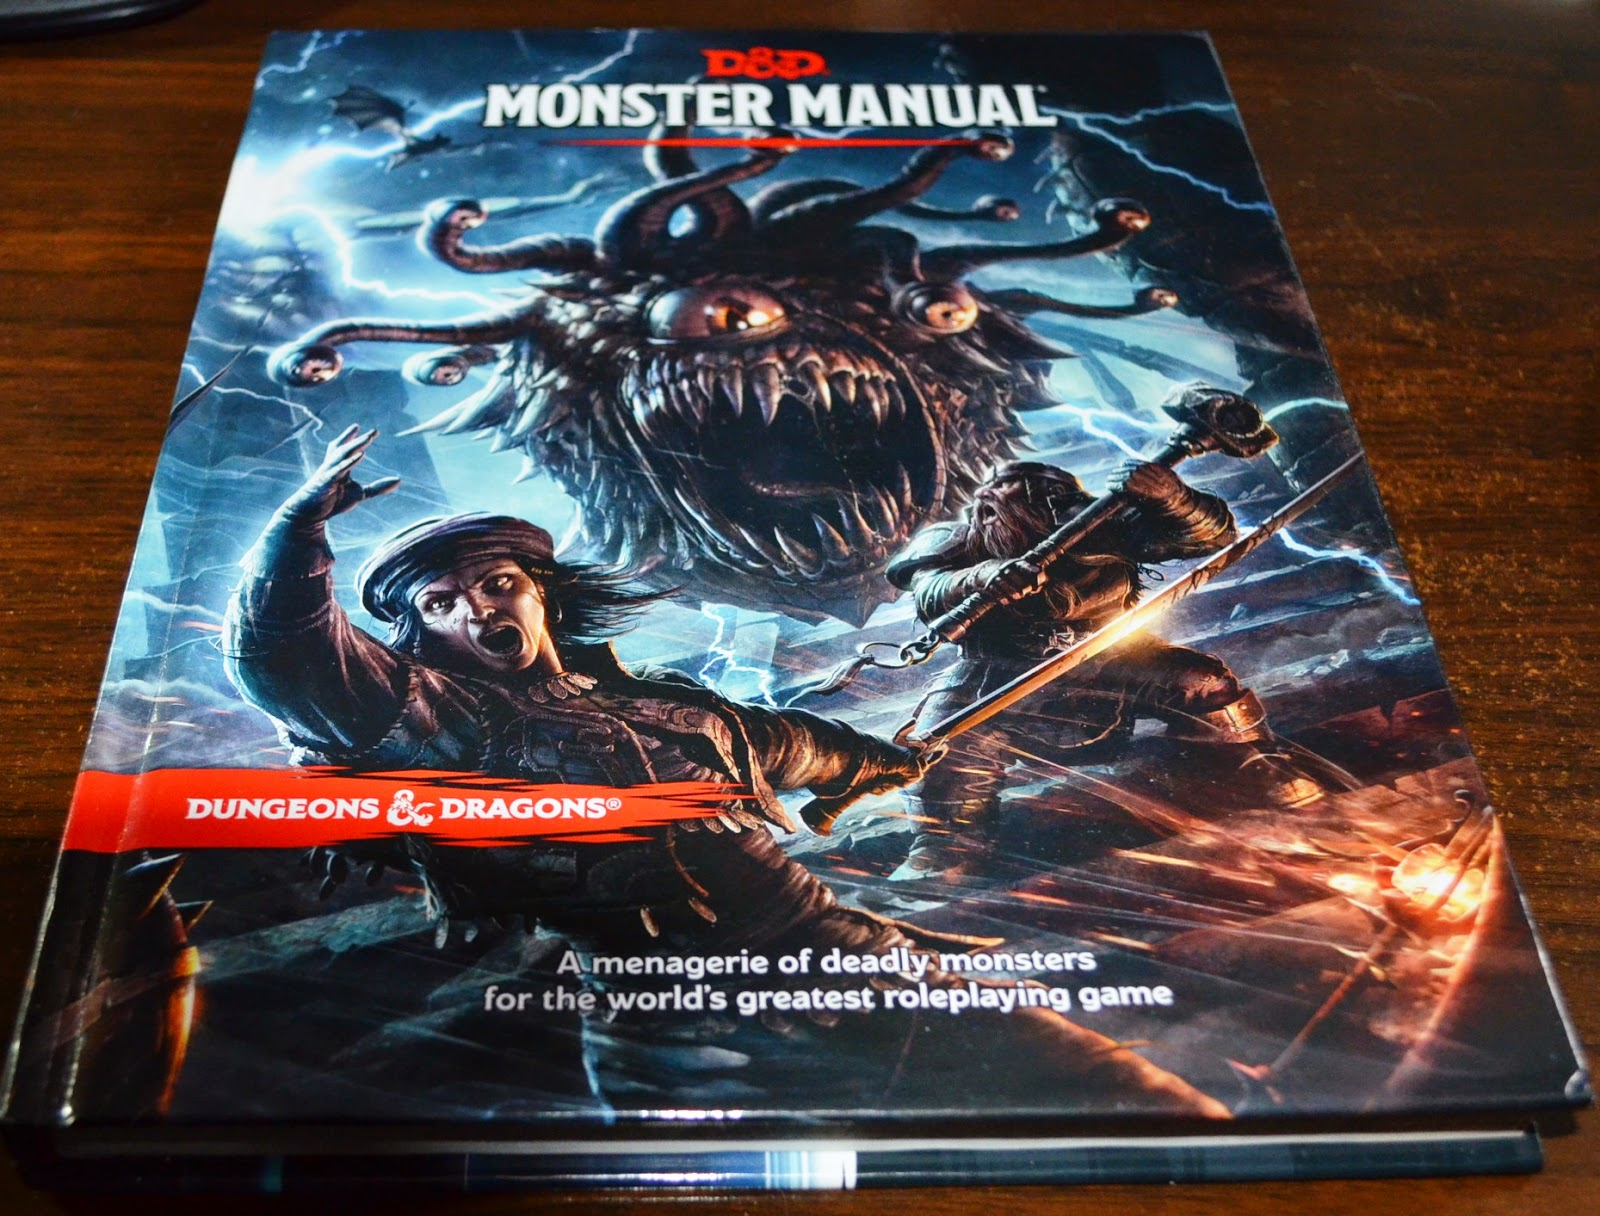 gothridge manor review d d next monster manual finally got mine rh gothridgemanor blogspot com monster manual 1st edition pdf monster manual 1 4e pdf